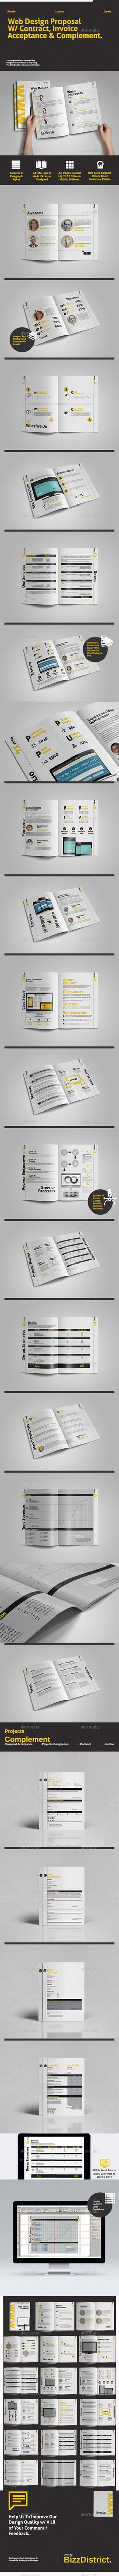 Web Design Proposal W/ Project Complement Template #design Download: http://graphicriver.net/item/web-design-proposal-w-project-complement/11460628?ref=ksioks